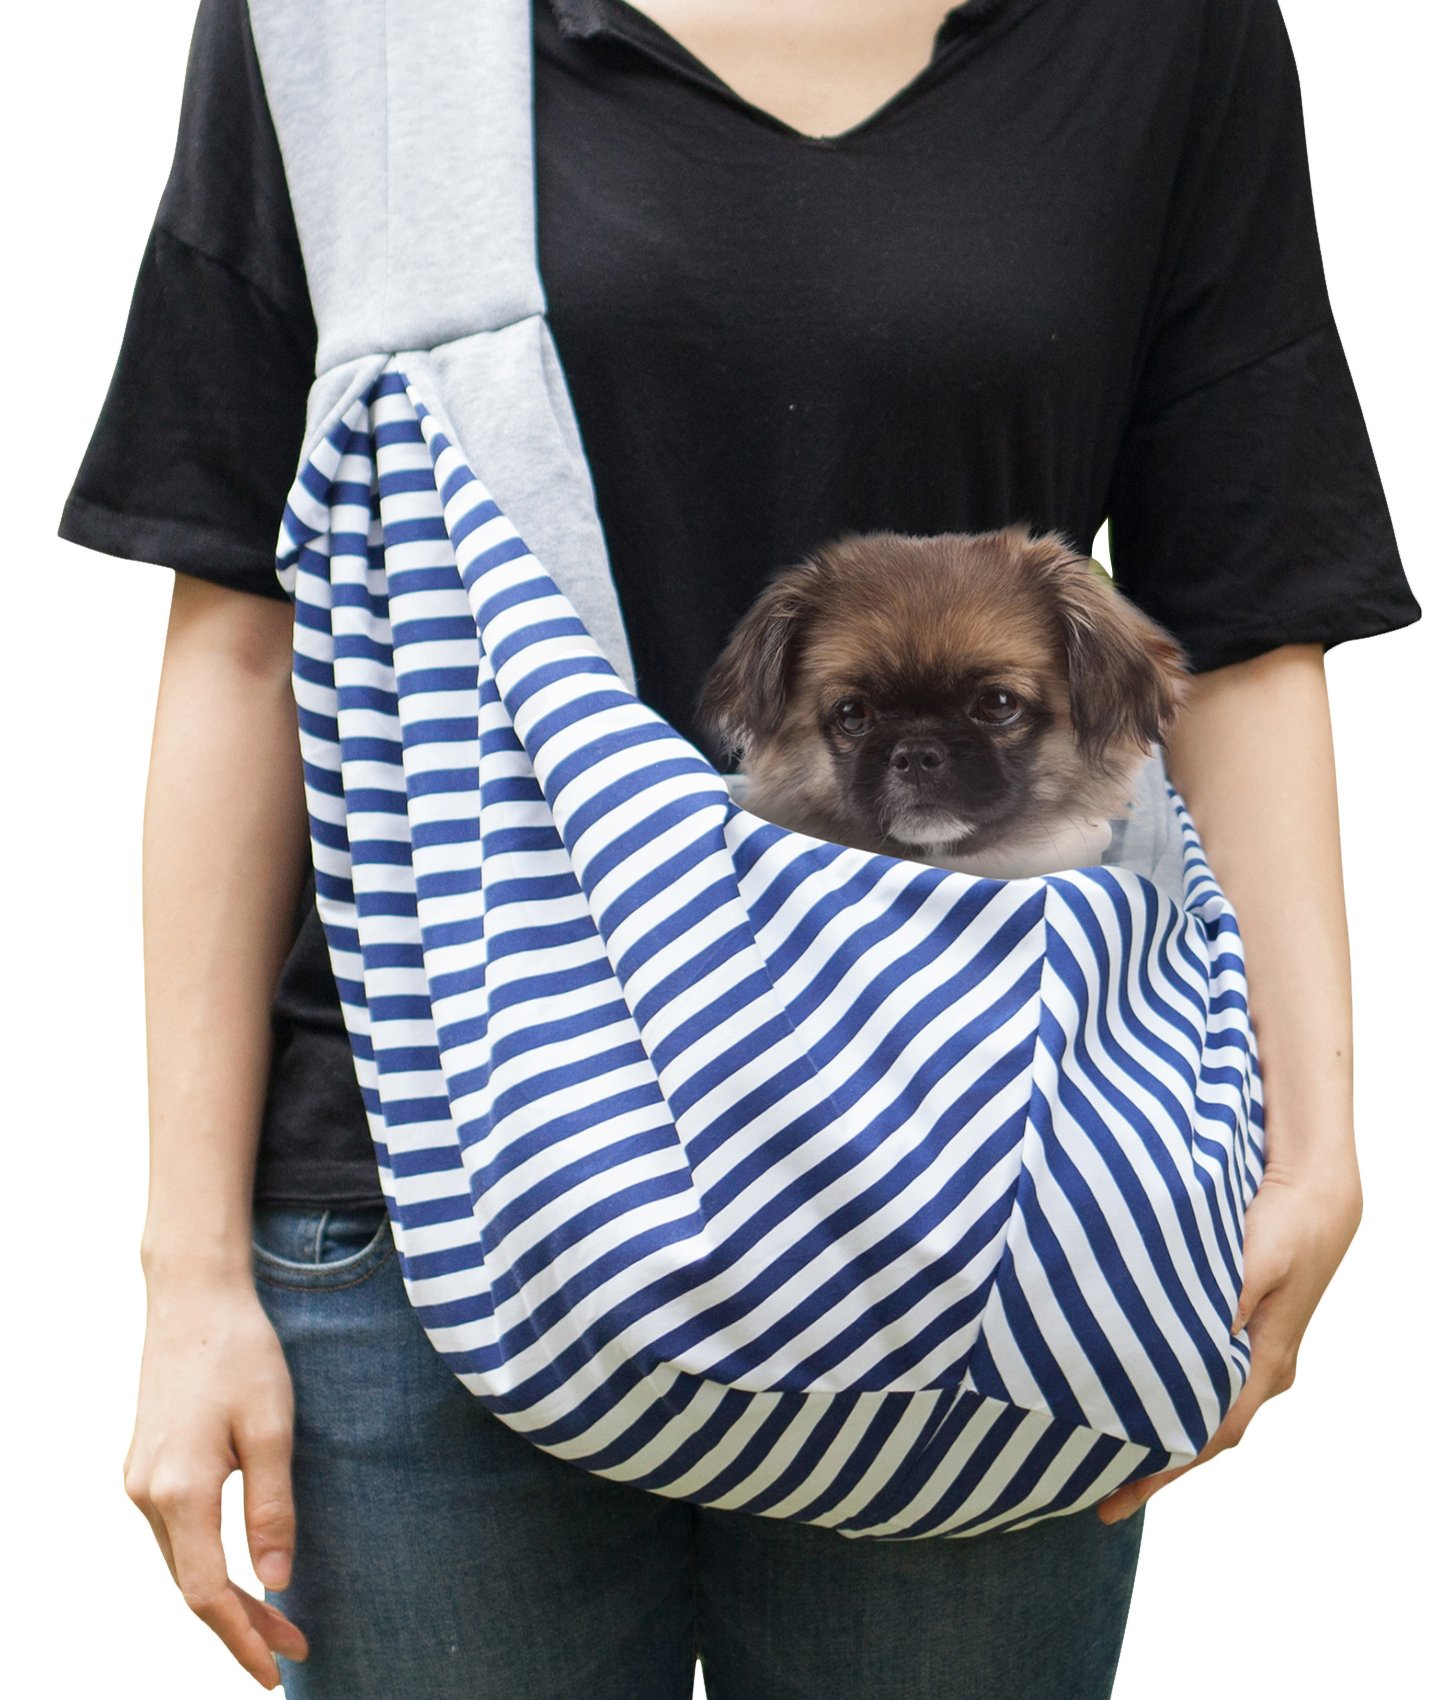 Timetuu BUY Hands-Free dog Carrier Sling , Soft Zipped POCKET, Waterproof BAG for Small Dogs, Cat Rabbit Pets Puppies. Reversible double-sided tote Pouch comfortable shoulder carry Travel kitty puppy